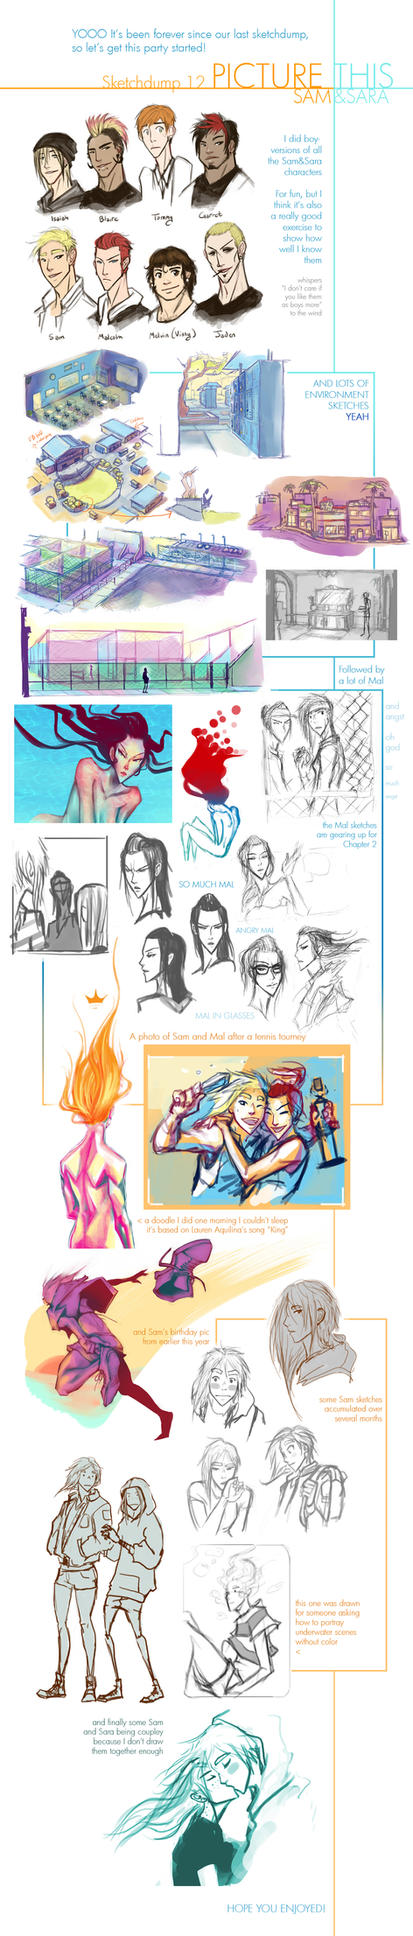 Picture This - Sketchdump 12 by Tyshea